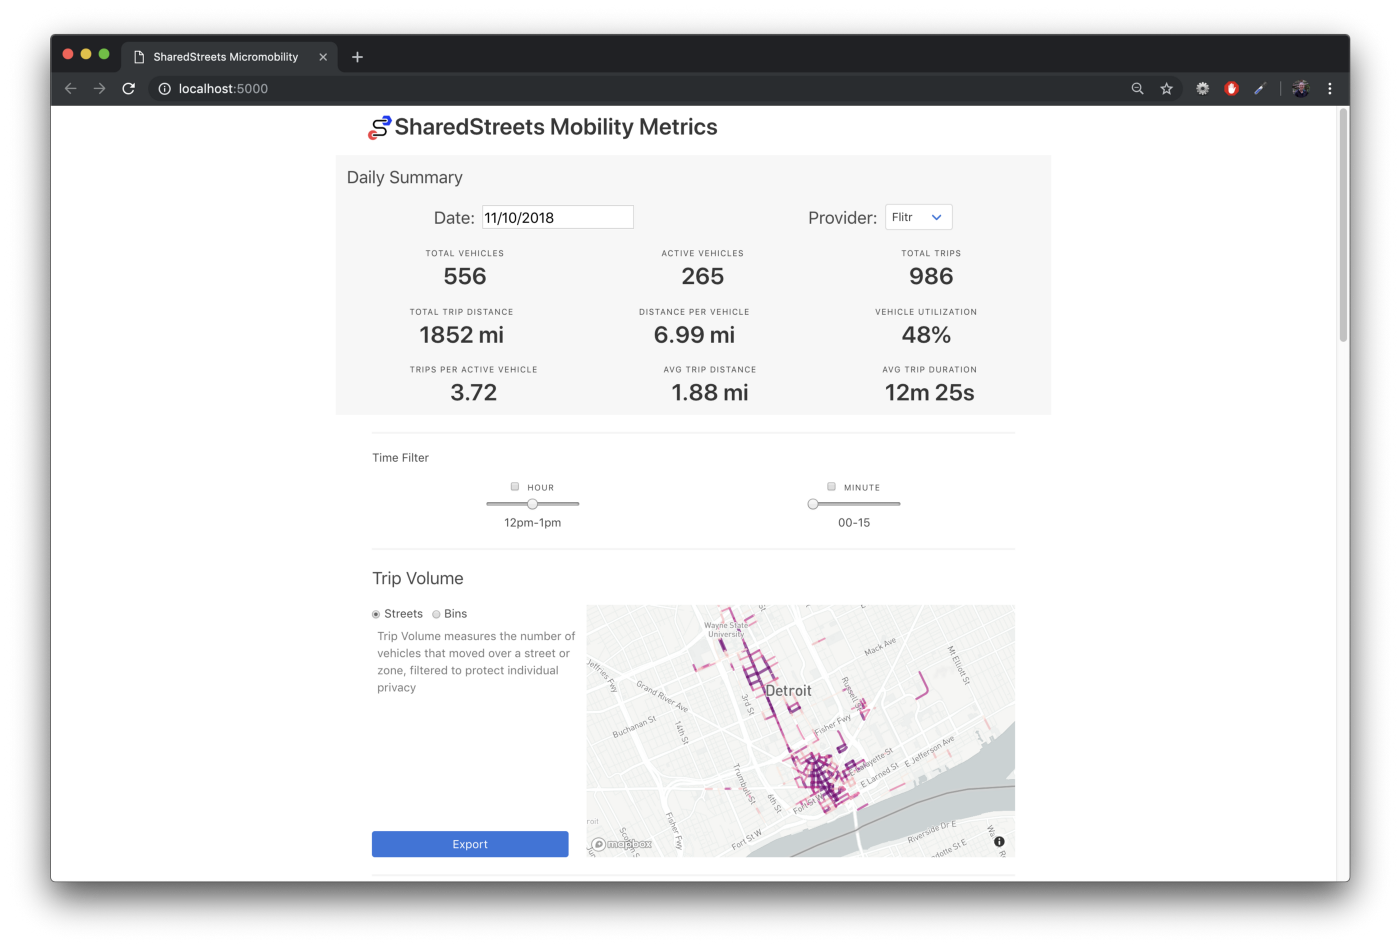 Shared Streets Mobility Metrics